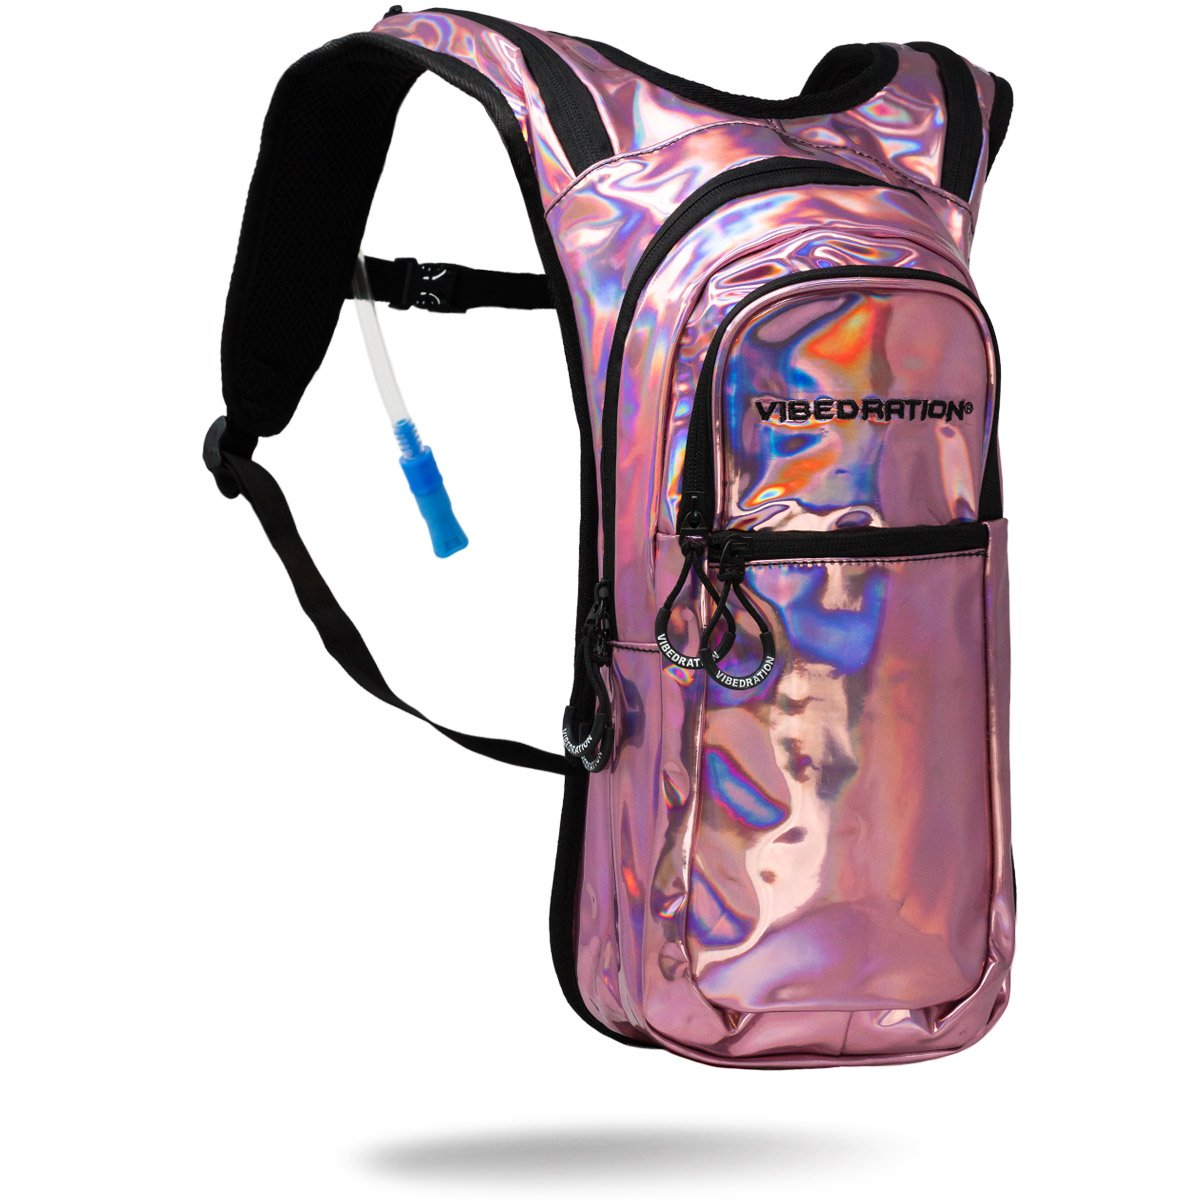 Vibedration VIP 2 Liter Hydration Pack | Festival Rave Hydration, Hiking Camping Backpack (Light Pink)